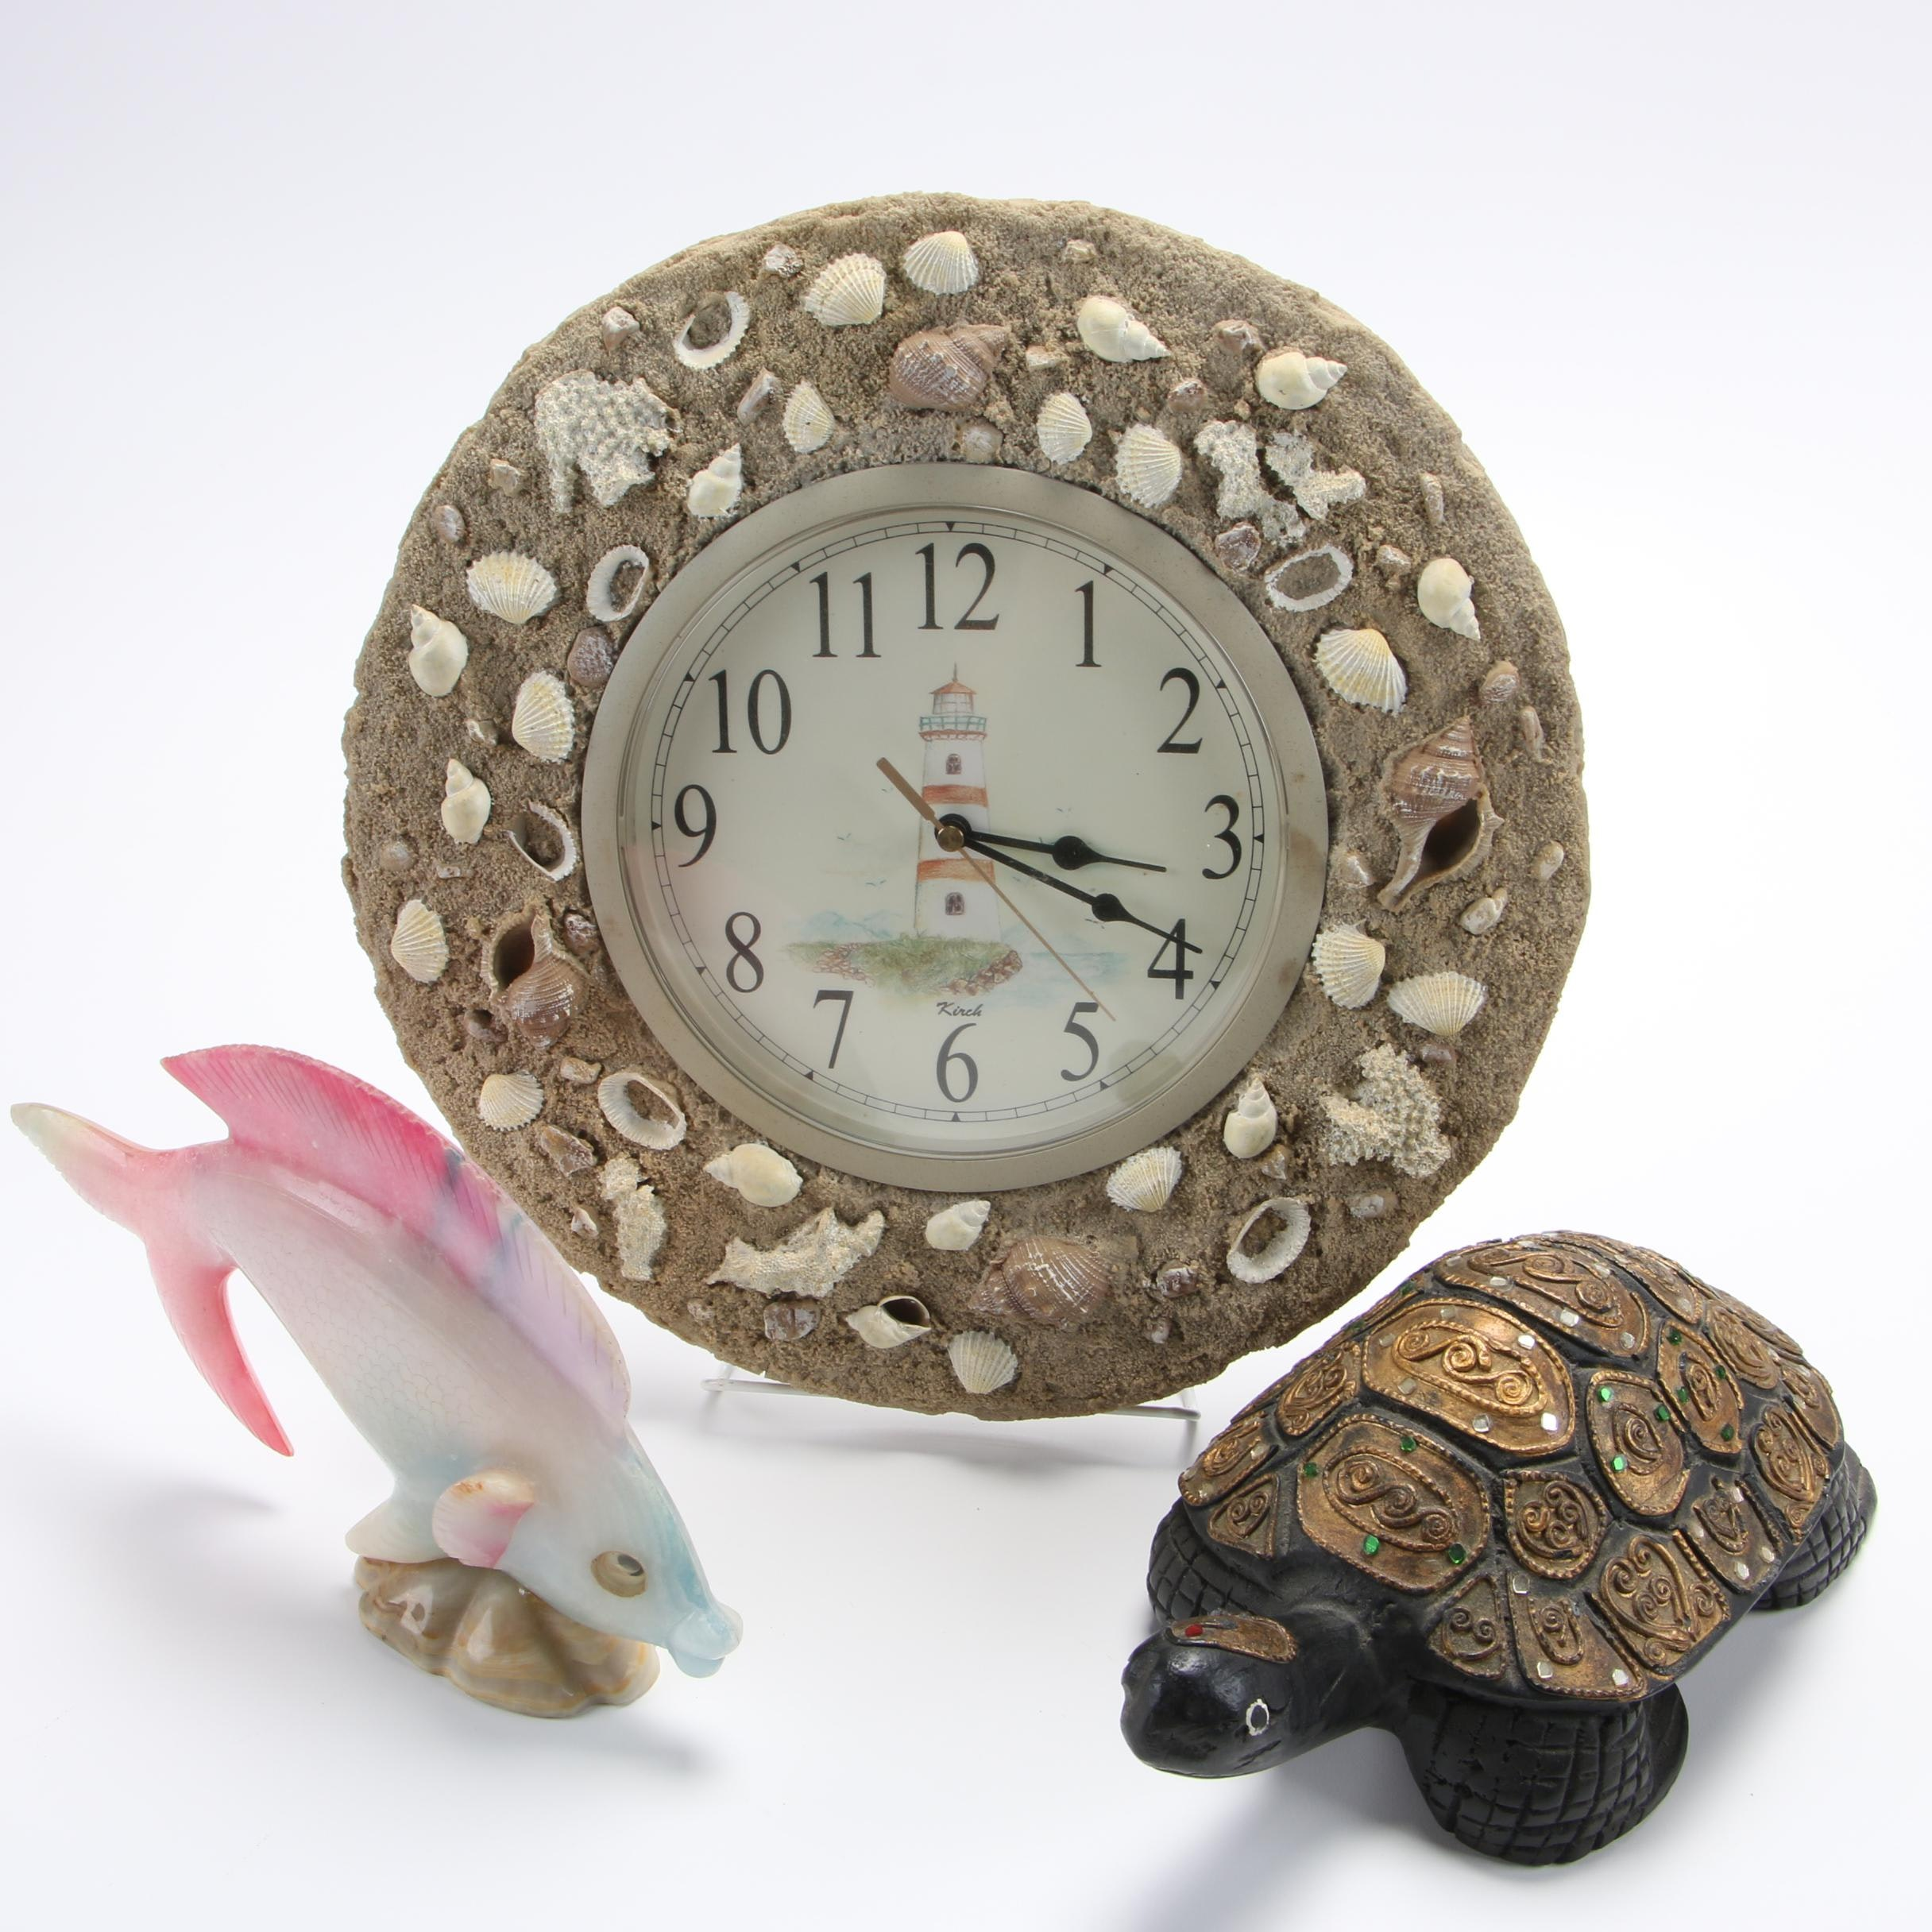 Kirch Nautical Themed Clock and Figurines